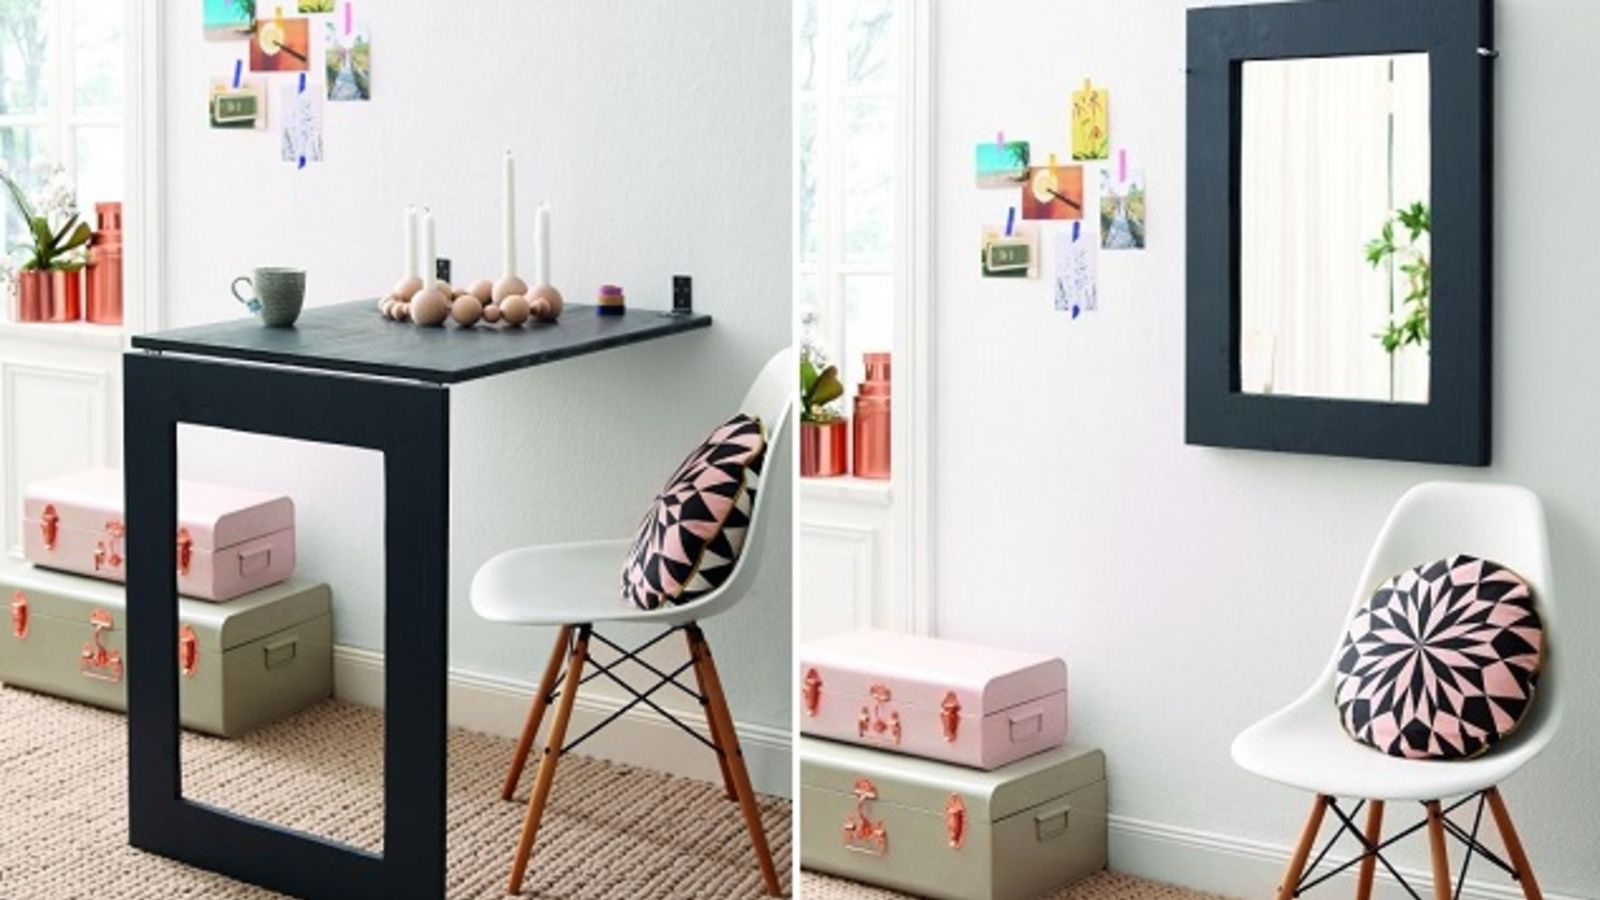 Recent Hinged Wall Mirrors Inside This Diy Desk Saves Space, Folds Up Into A Wall Mirror When Not In Use (Gallery 16 of 20)